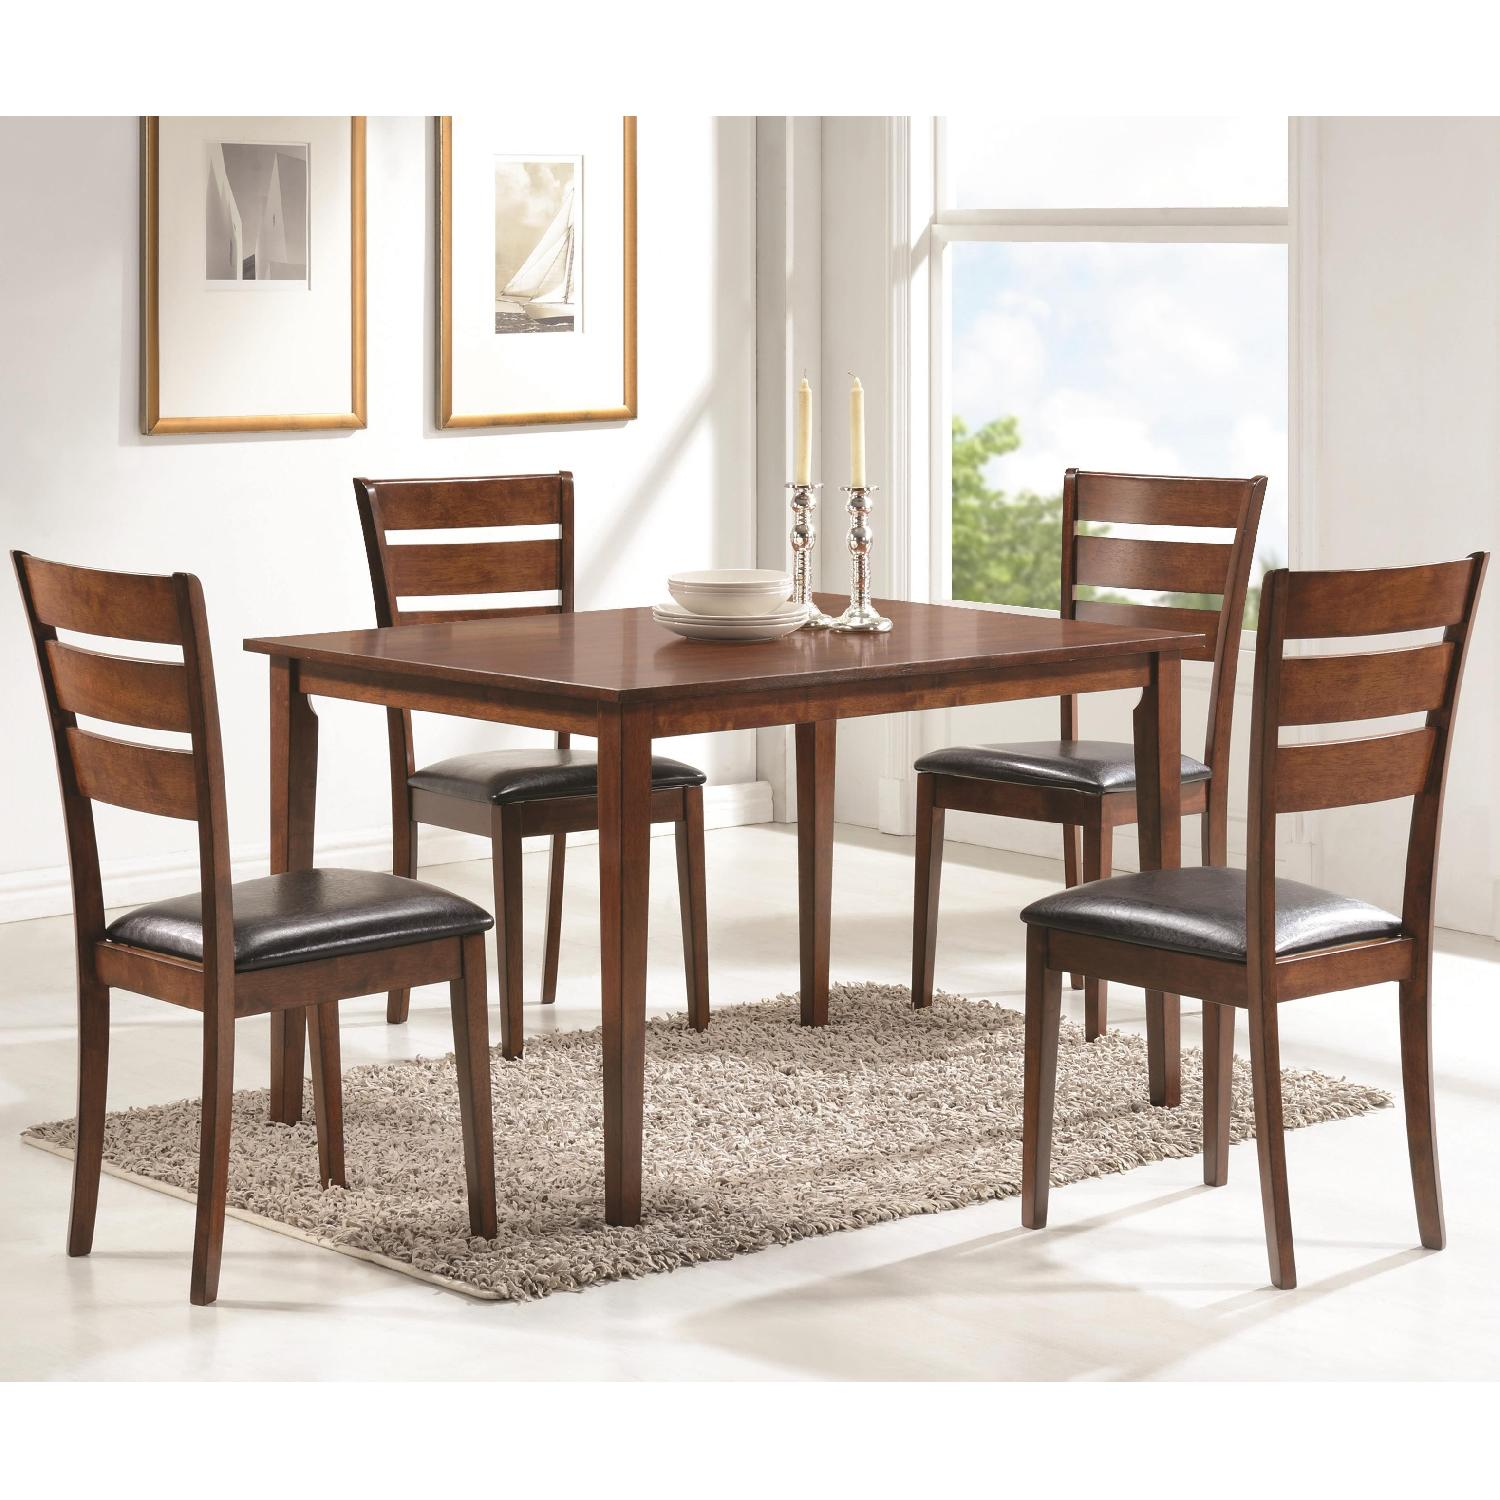 5 Piece Dining Set in Medium Warm Brown Finish - image-1